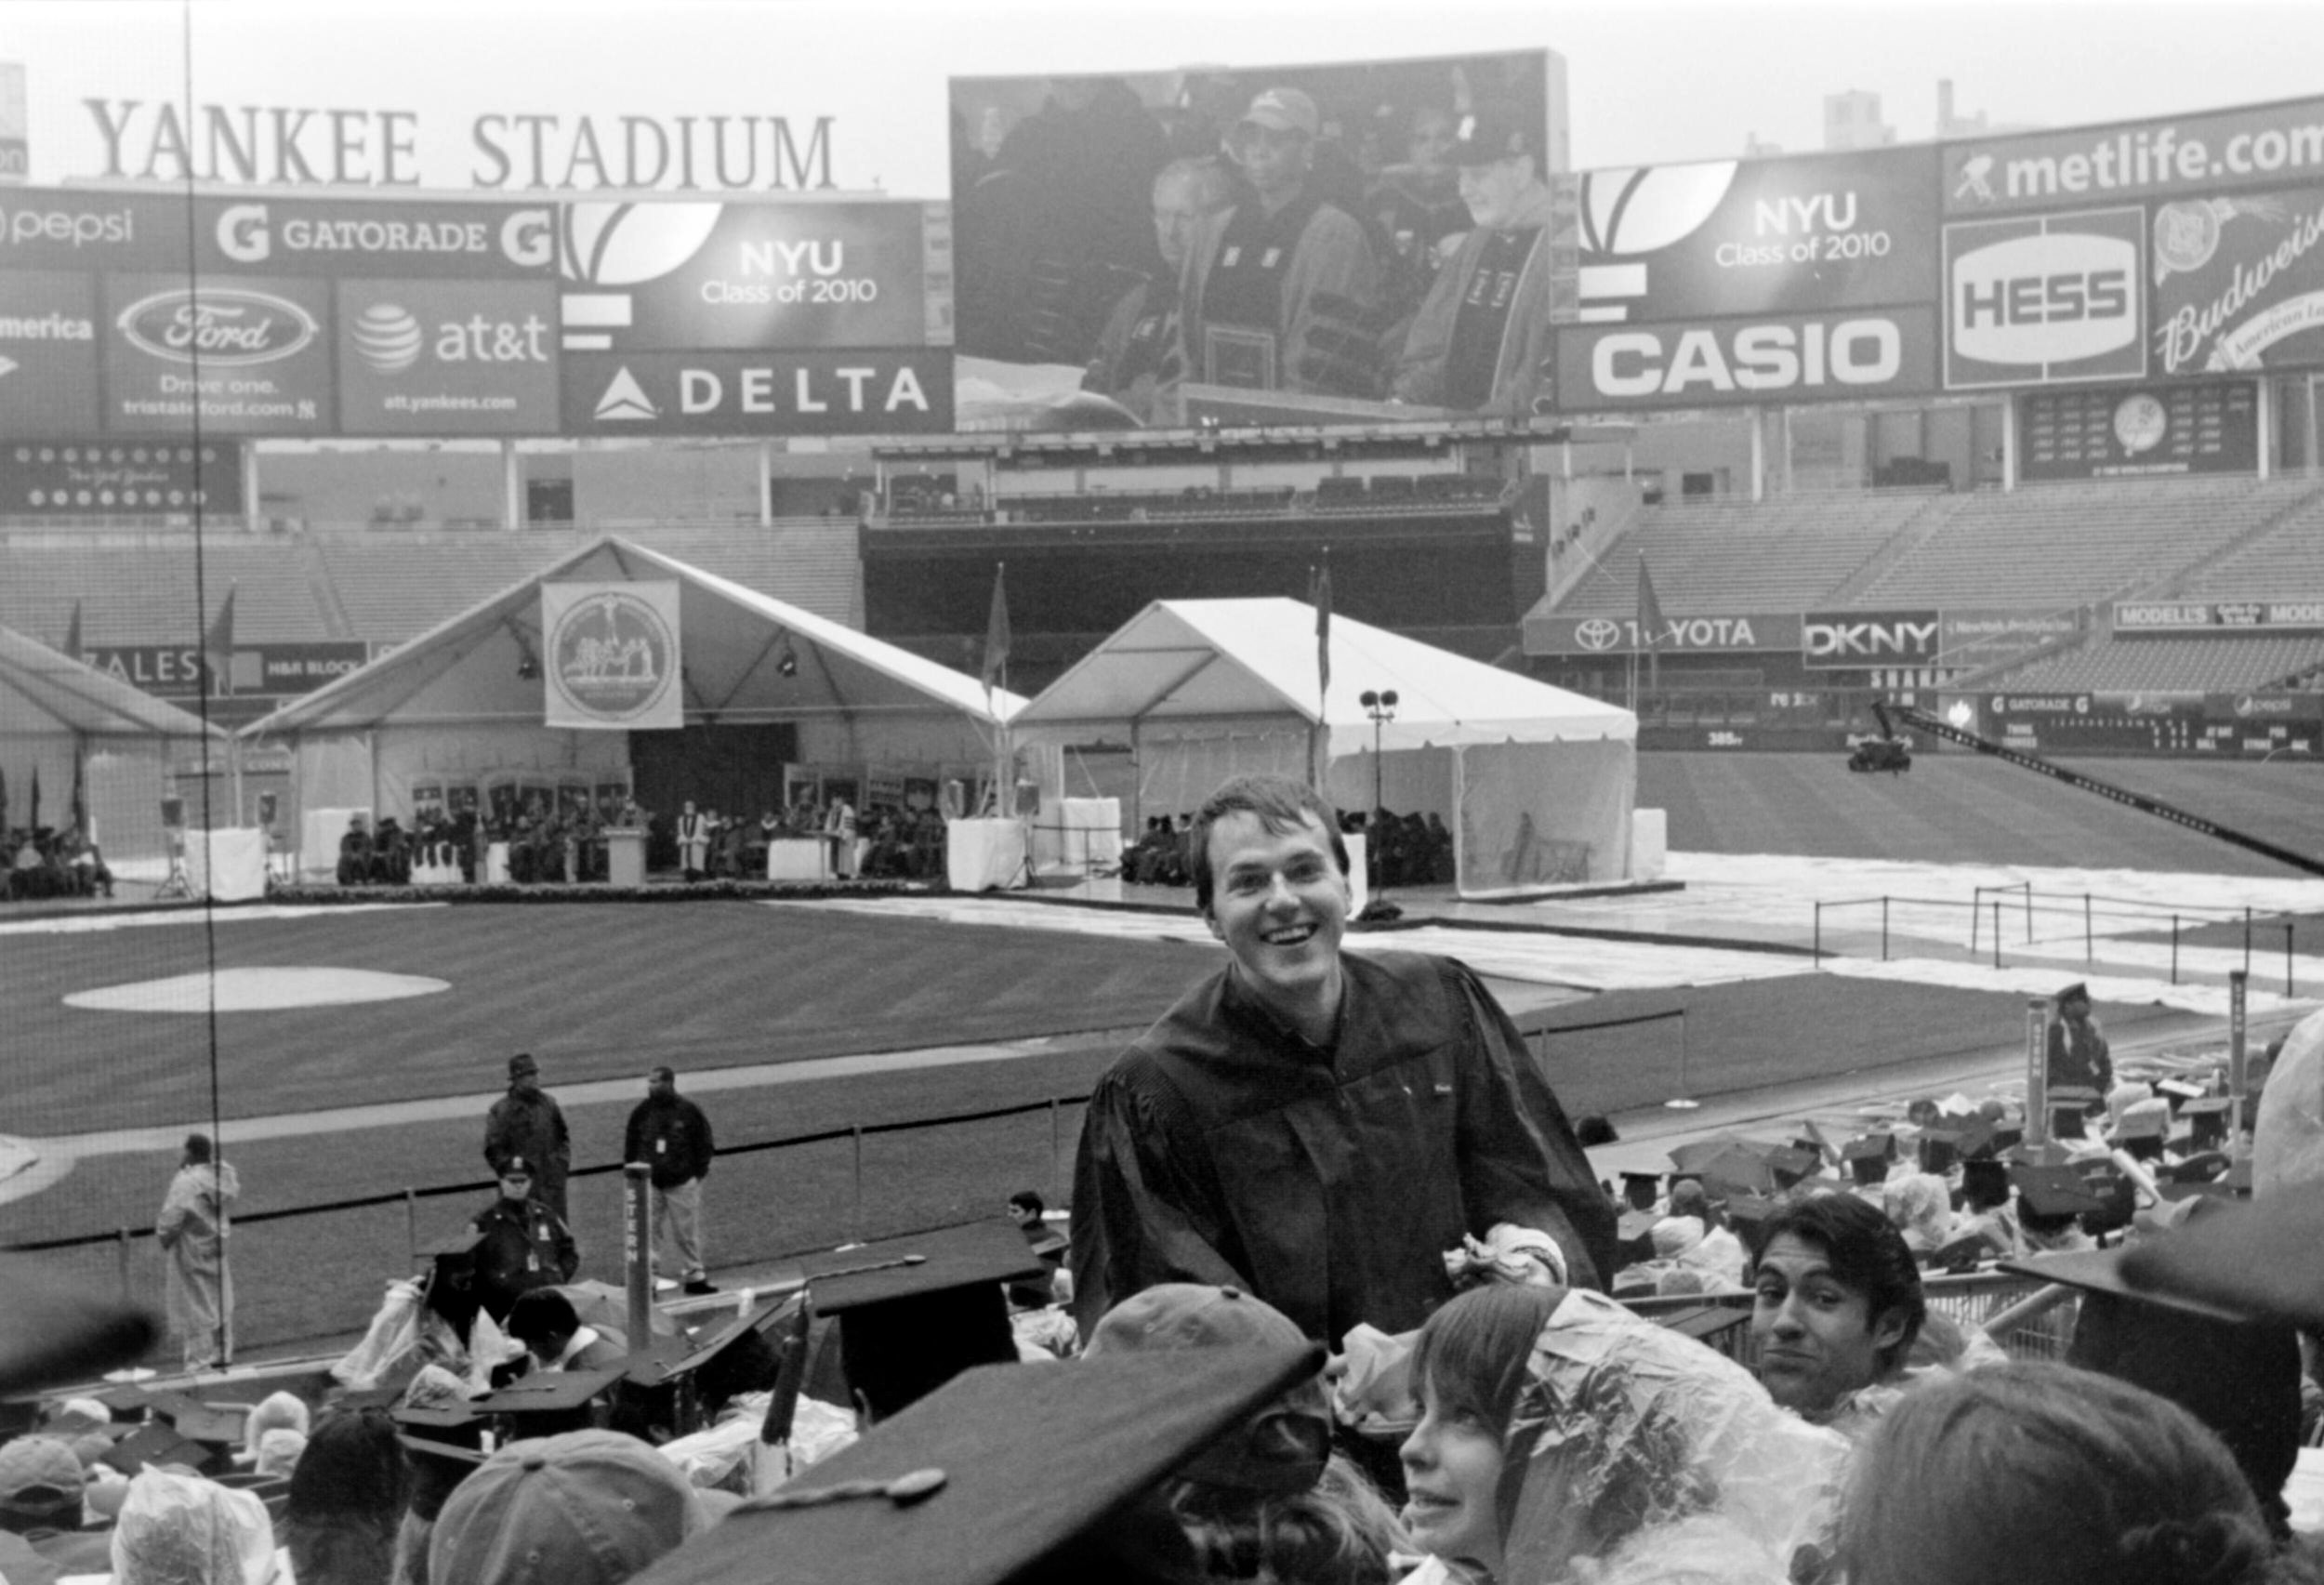 Mark in Yankee Stadium  NYU Graduation 2010  35mm b&w film